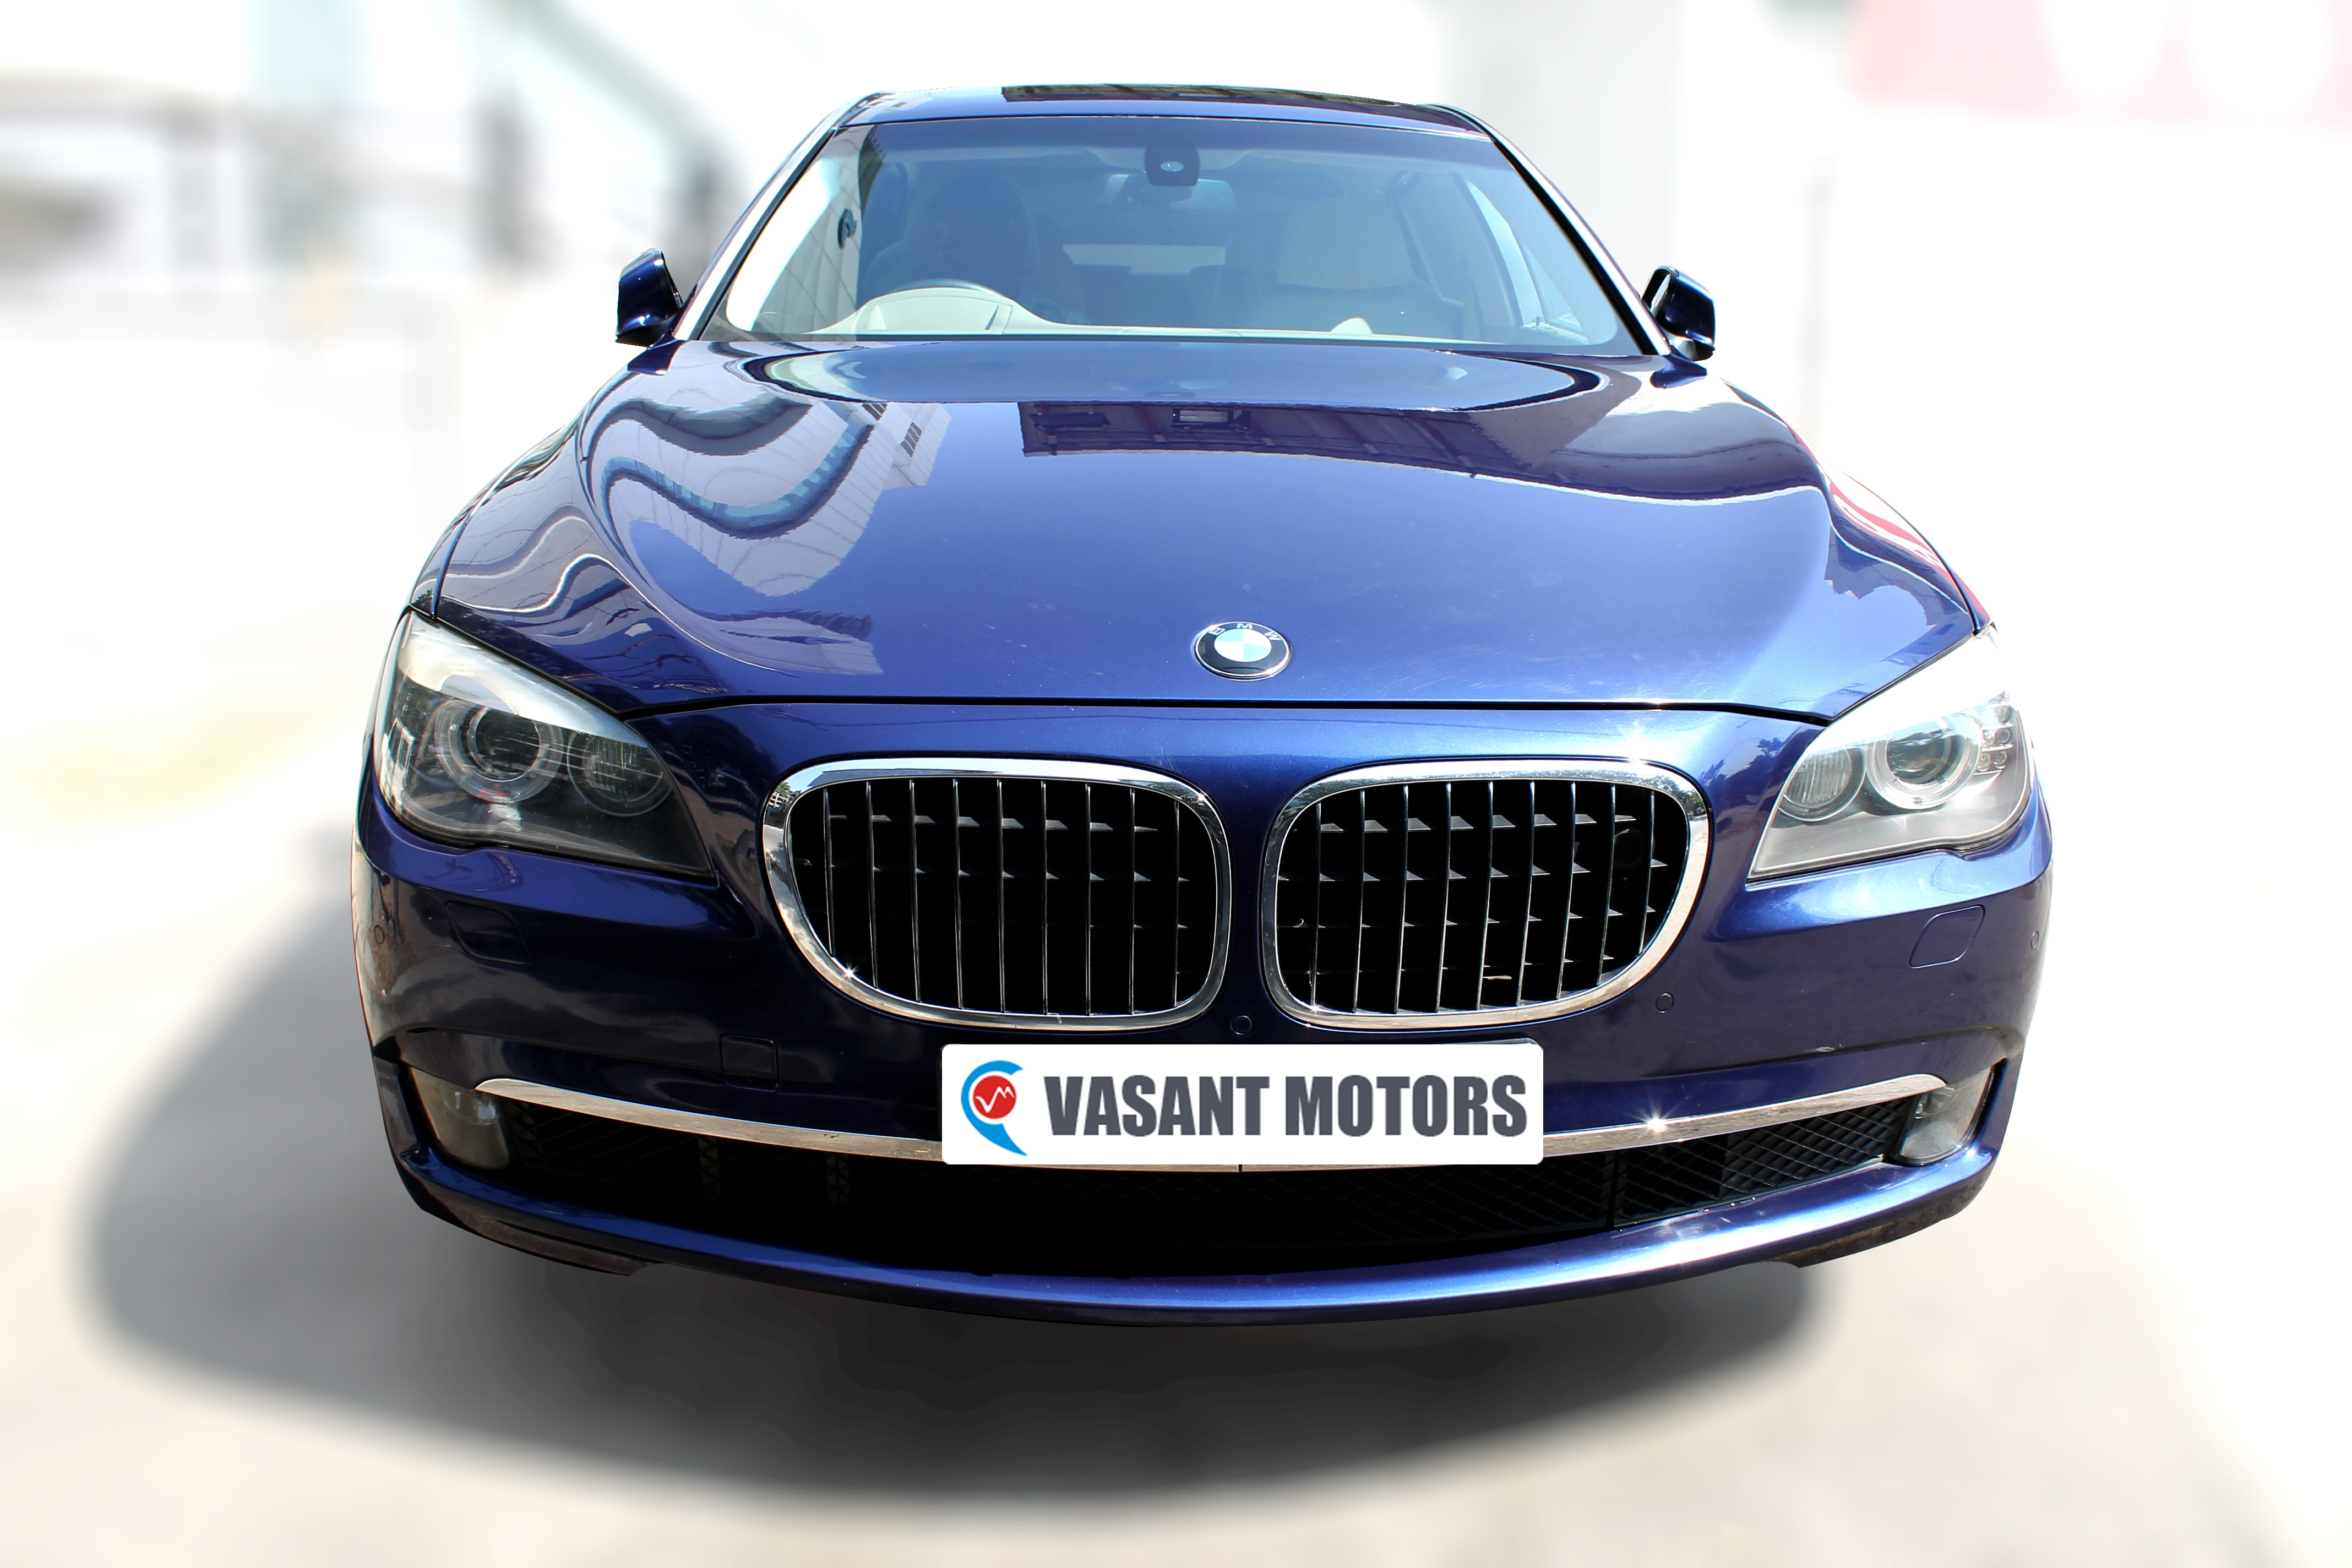 BMW 730LD (BLUE COLOR, DIESEL), 2009 model done only 44, 000km in absolute mint condition. For further info call 7569696666